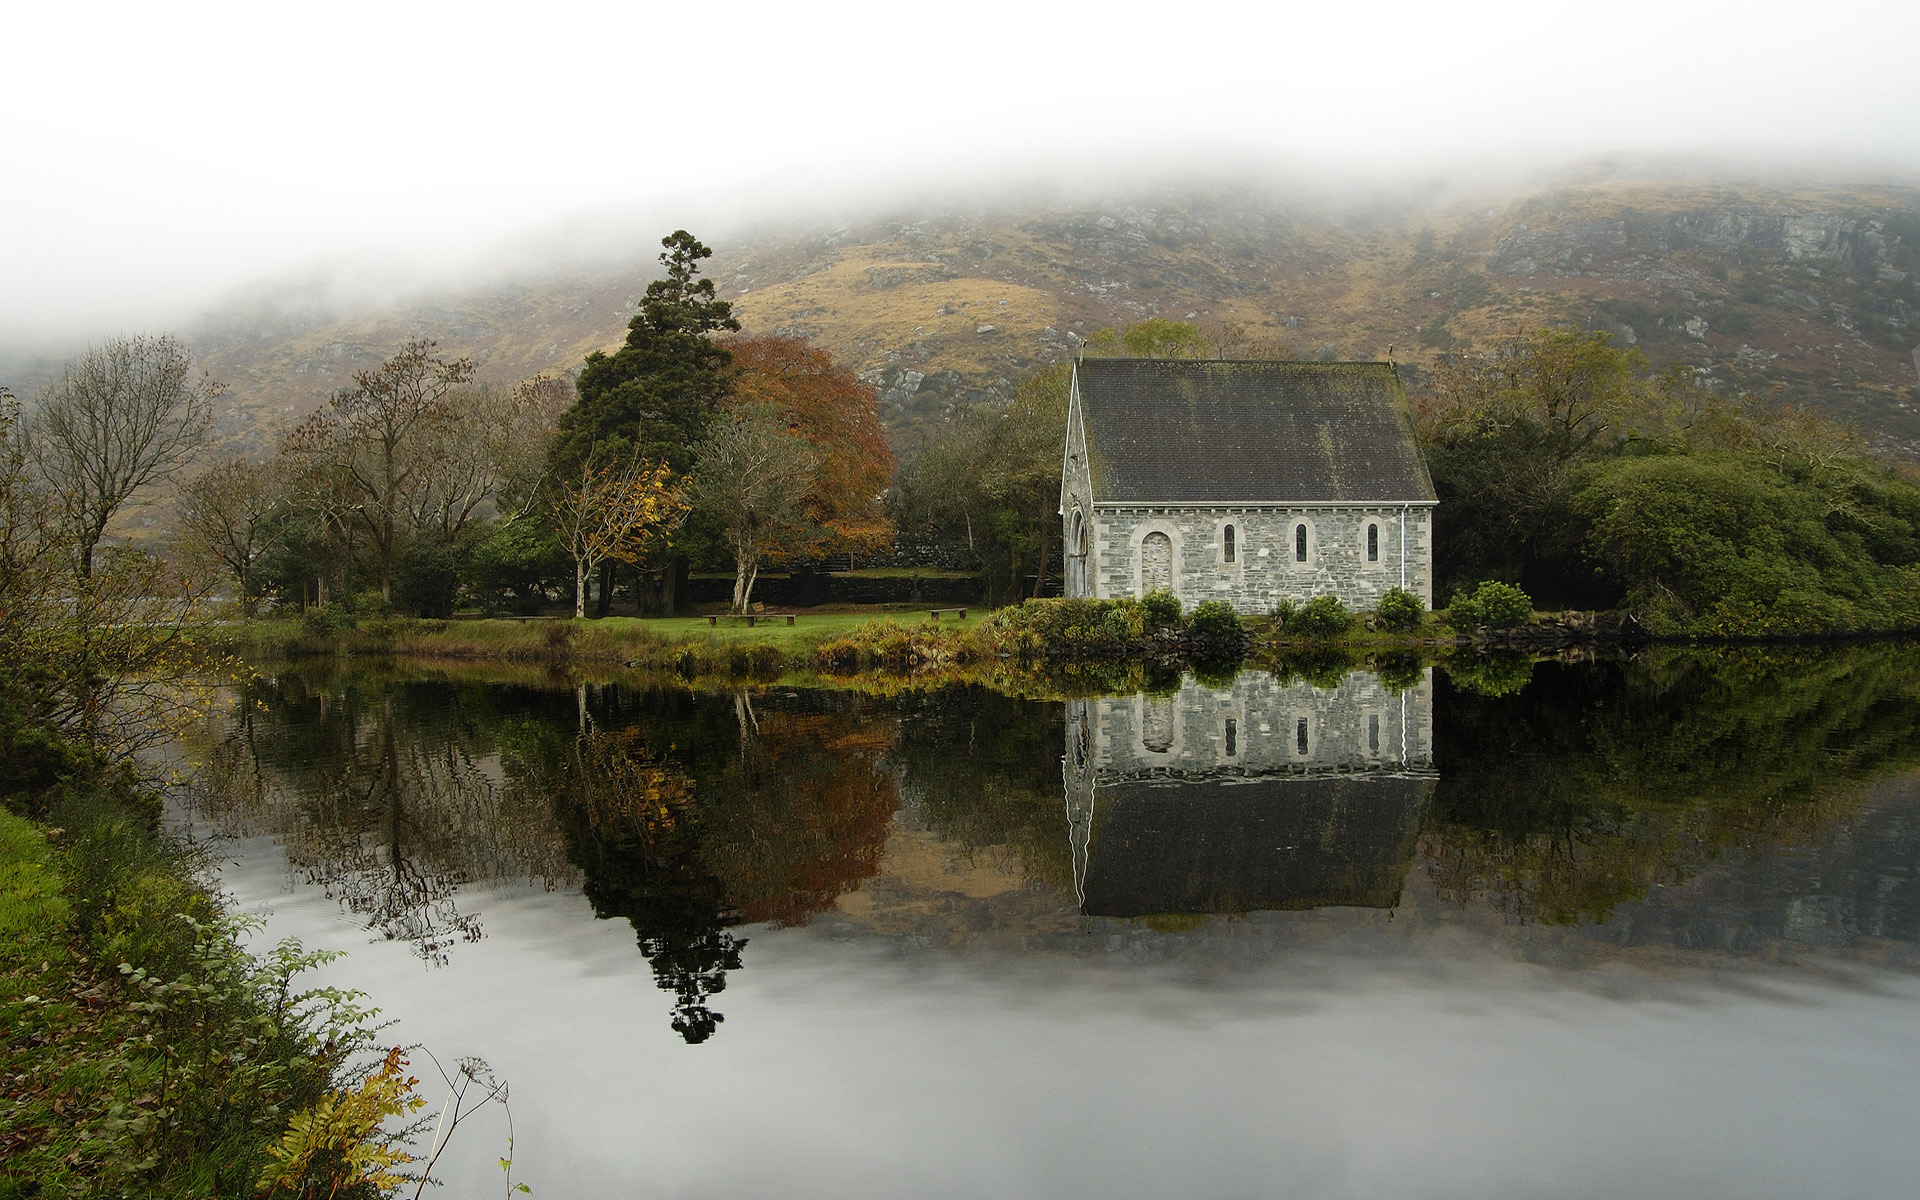 World_Ireland_Gougane_Barra_007610_.jpg Ireland 1920x1200